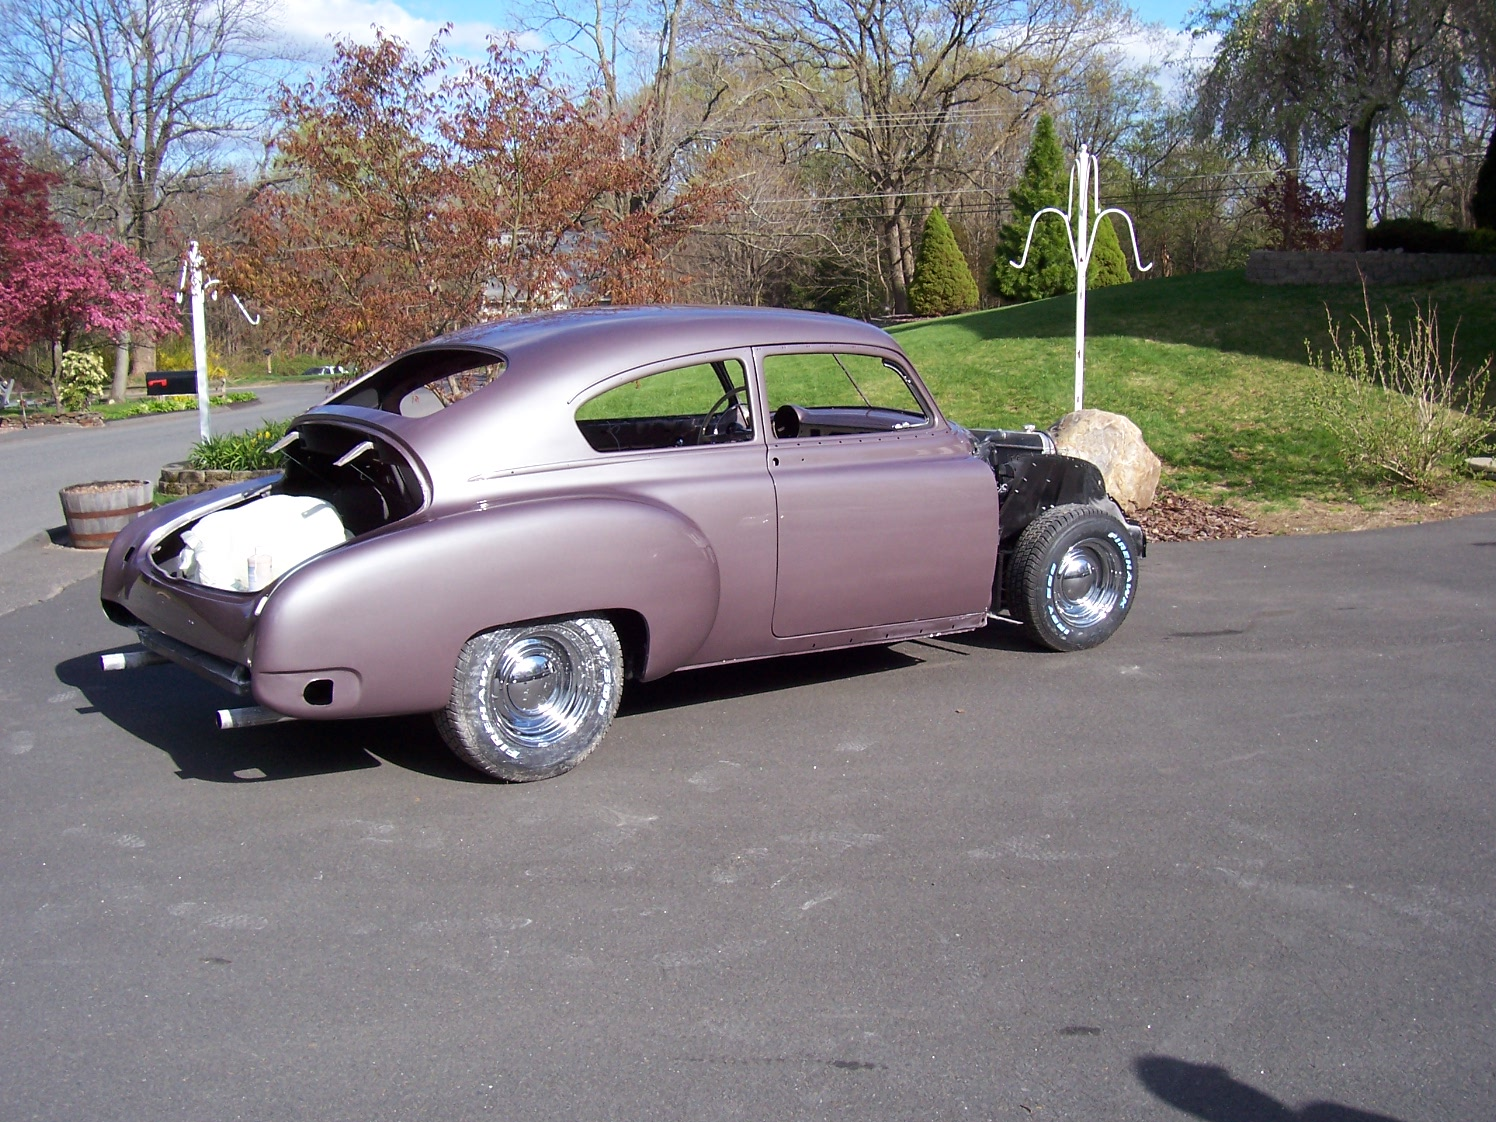 Click image for larger version  Name:2005_021650chevypicnewpaint0007.JPG Views:128 Size:670.7 KB ID:46014